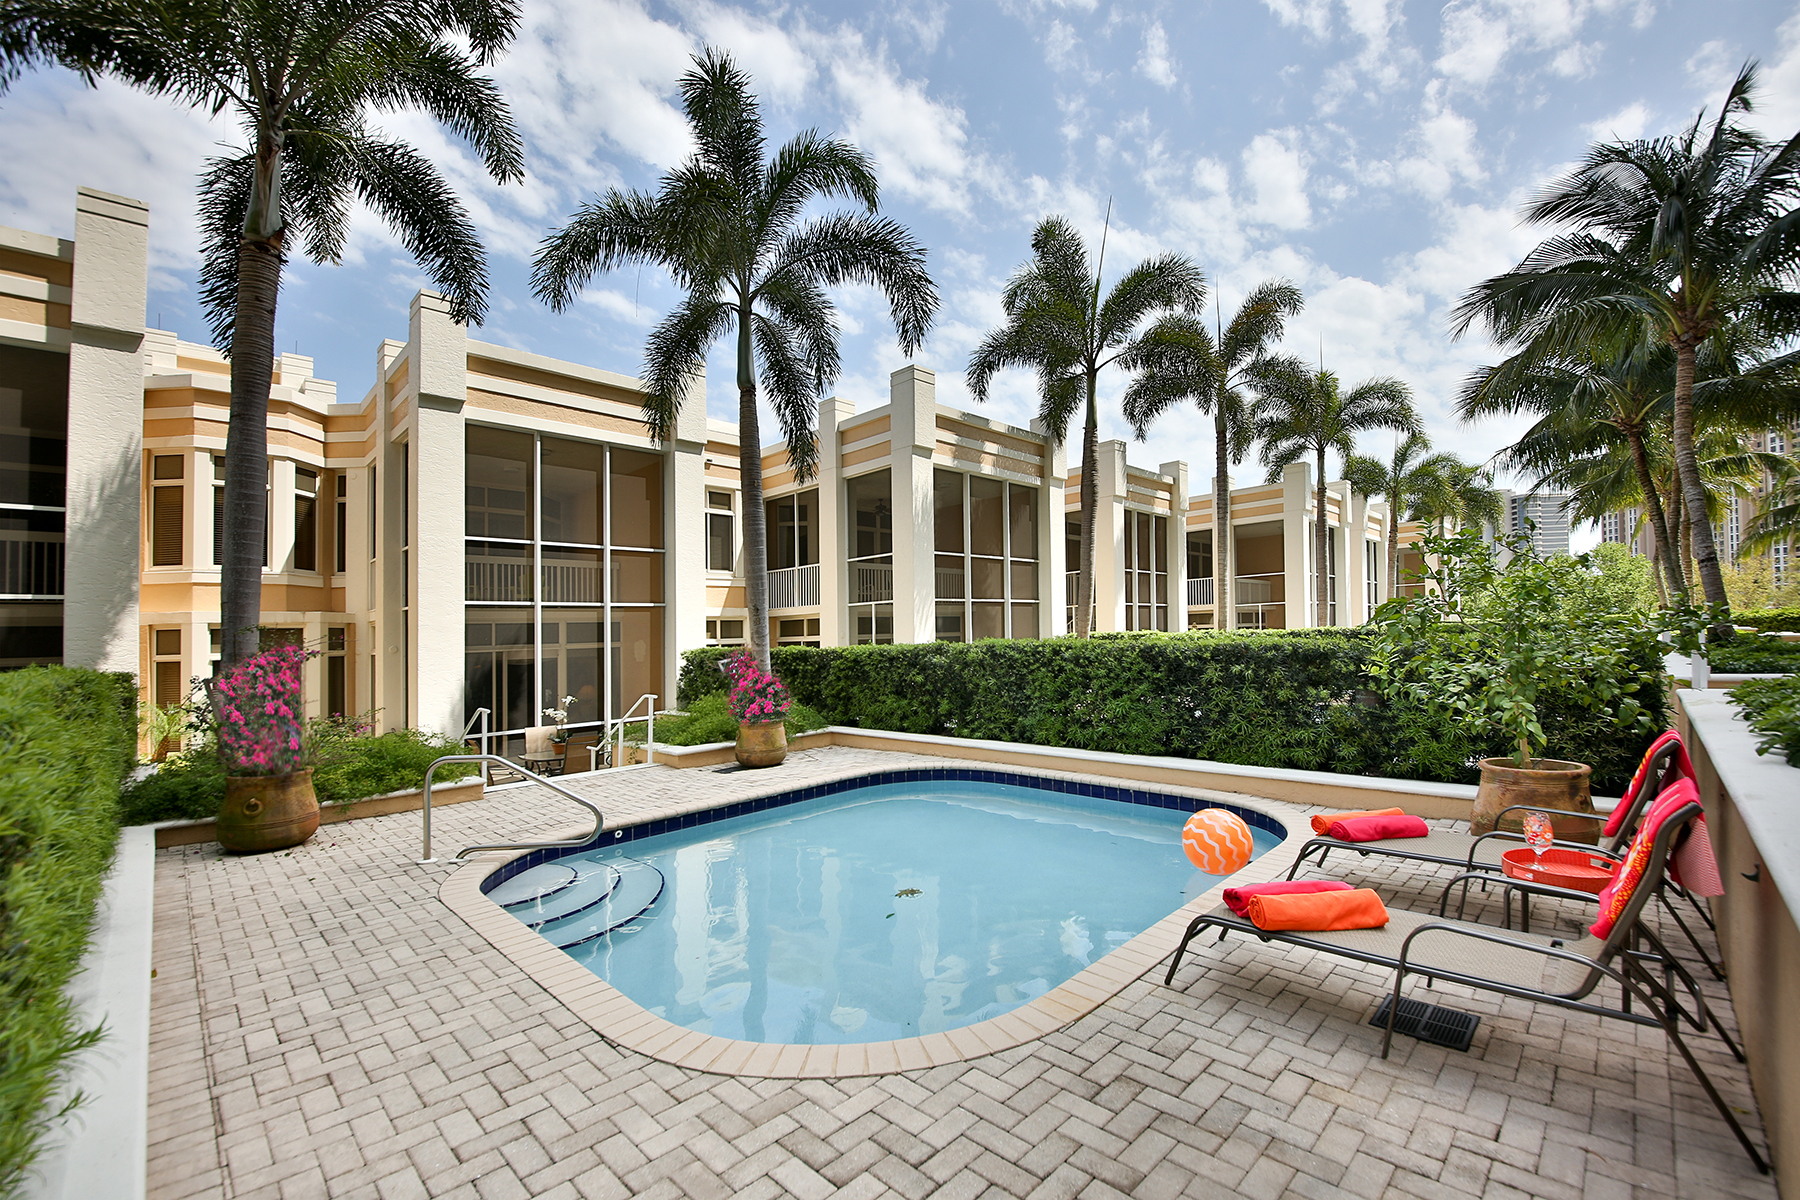 Townhouse for Rent at PELICAN BAY - ST. RAPHAEL 7061 Pelican Bay Blvd 6, Naples, Florida 34108 United States